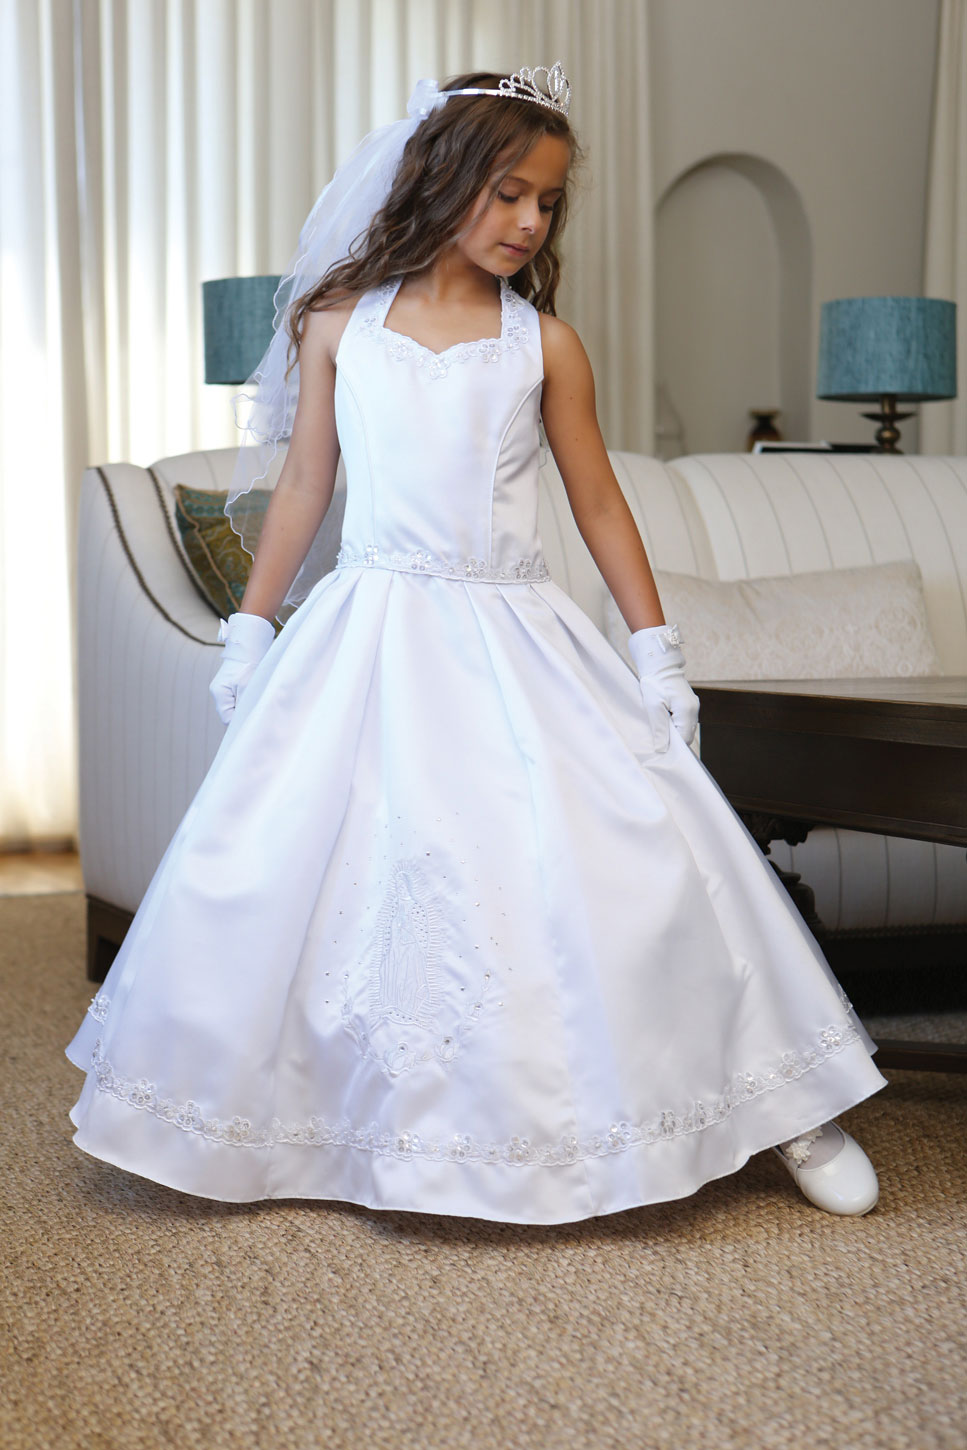 Virgin Mary Communion Dresses Flower Girl Dresses Flower Girl